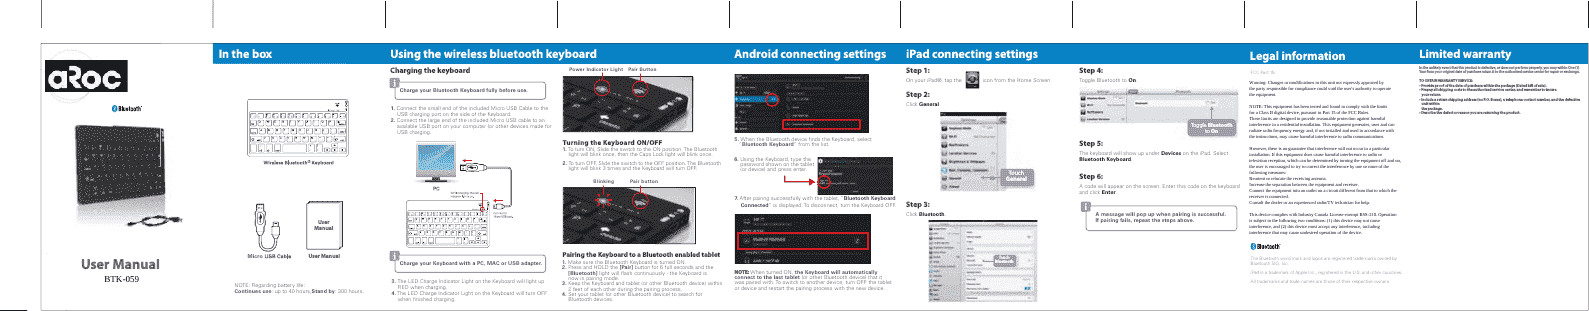 pairing a bluetooth keyboard 2248694-0-png.png